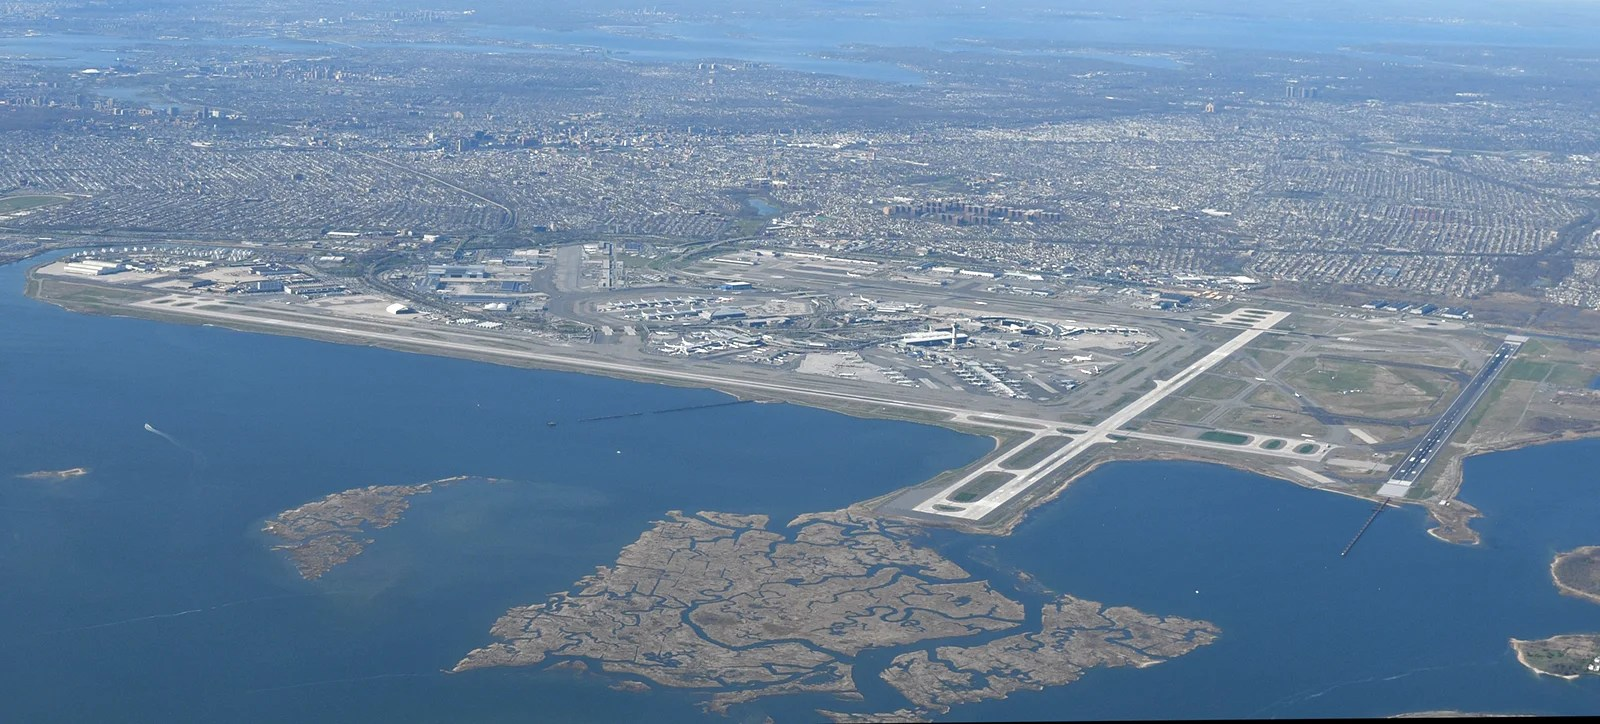 Takeoff queues at JFK will get shorter, beginning this weekend